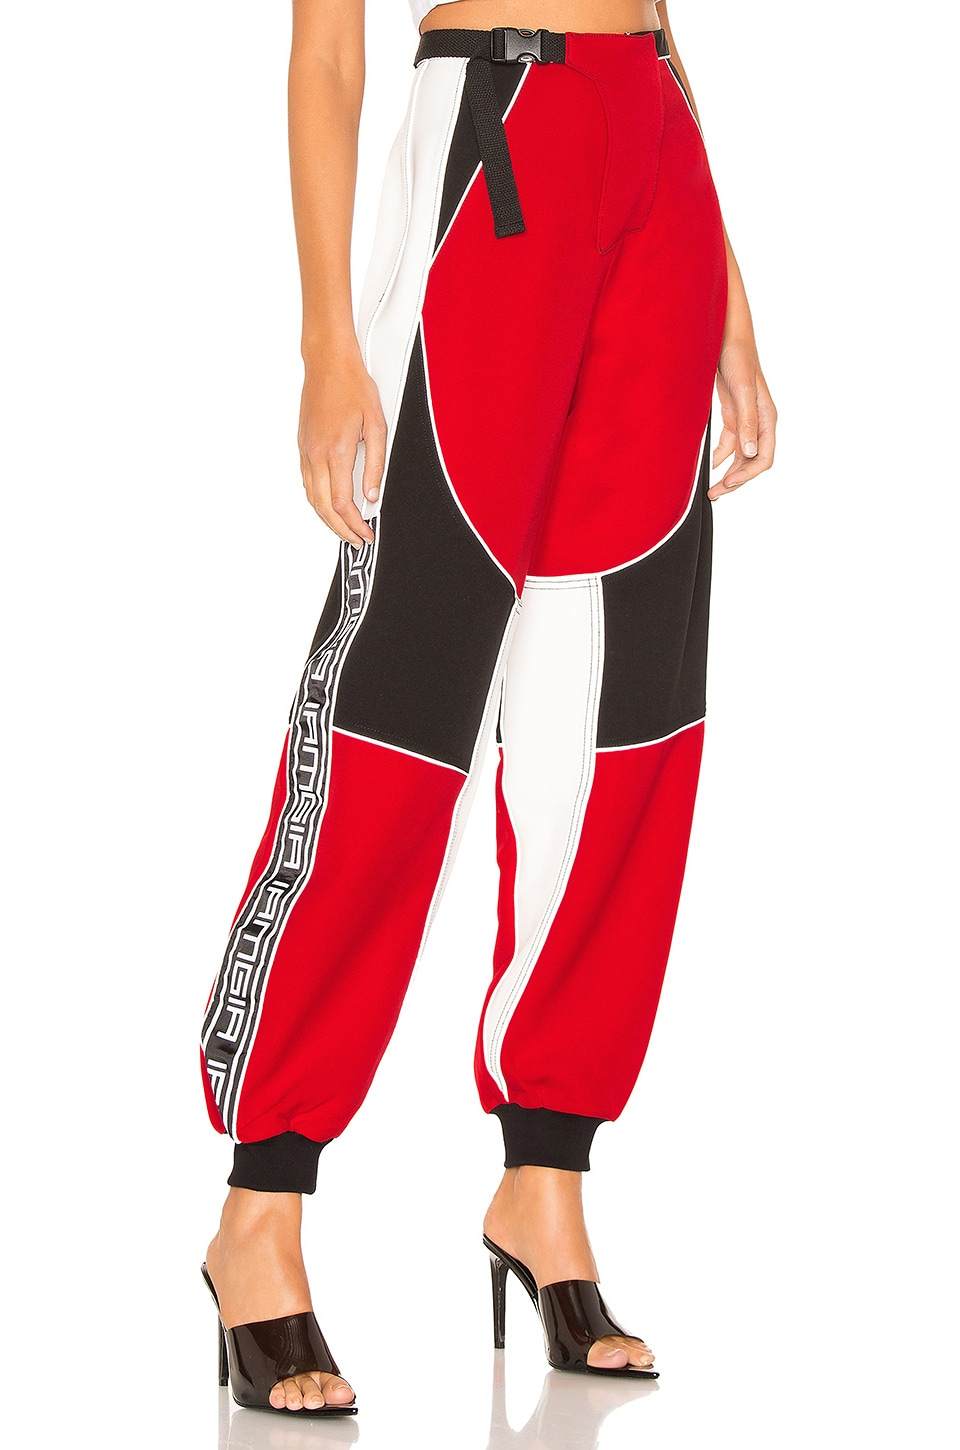 I.AM.GIA Electra Pant in Red